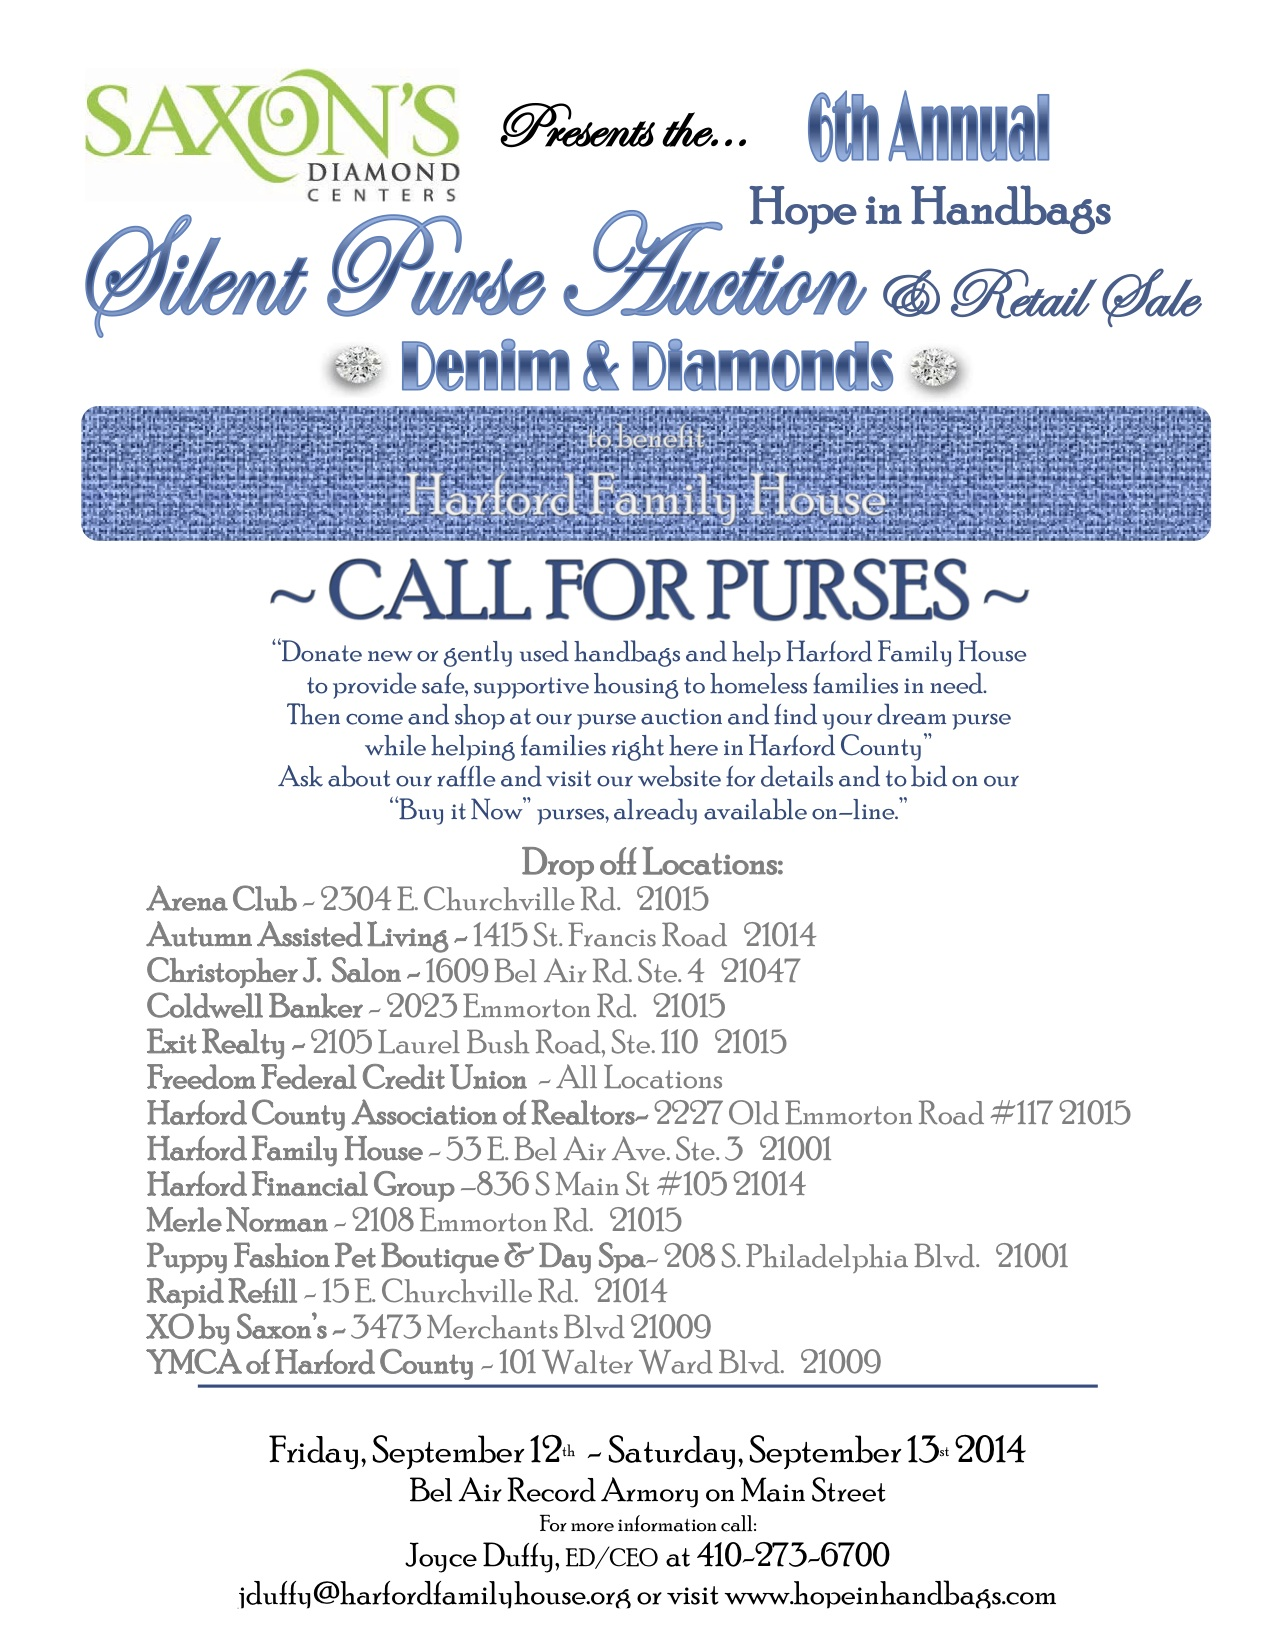 Organizers Of The Hope In Handbags Purse Auction Seek Donations New And Gently Used For Fundraiser Sept 12 13 That Benefits Harford